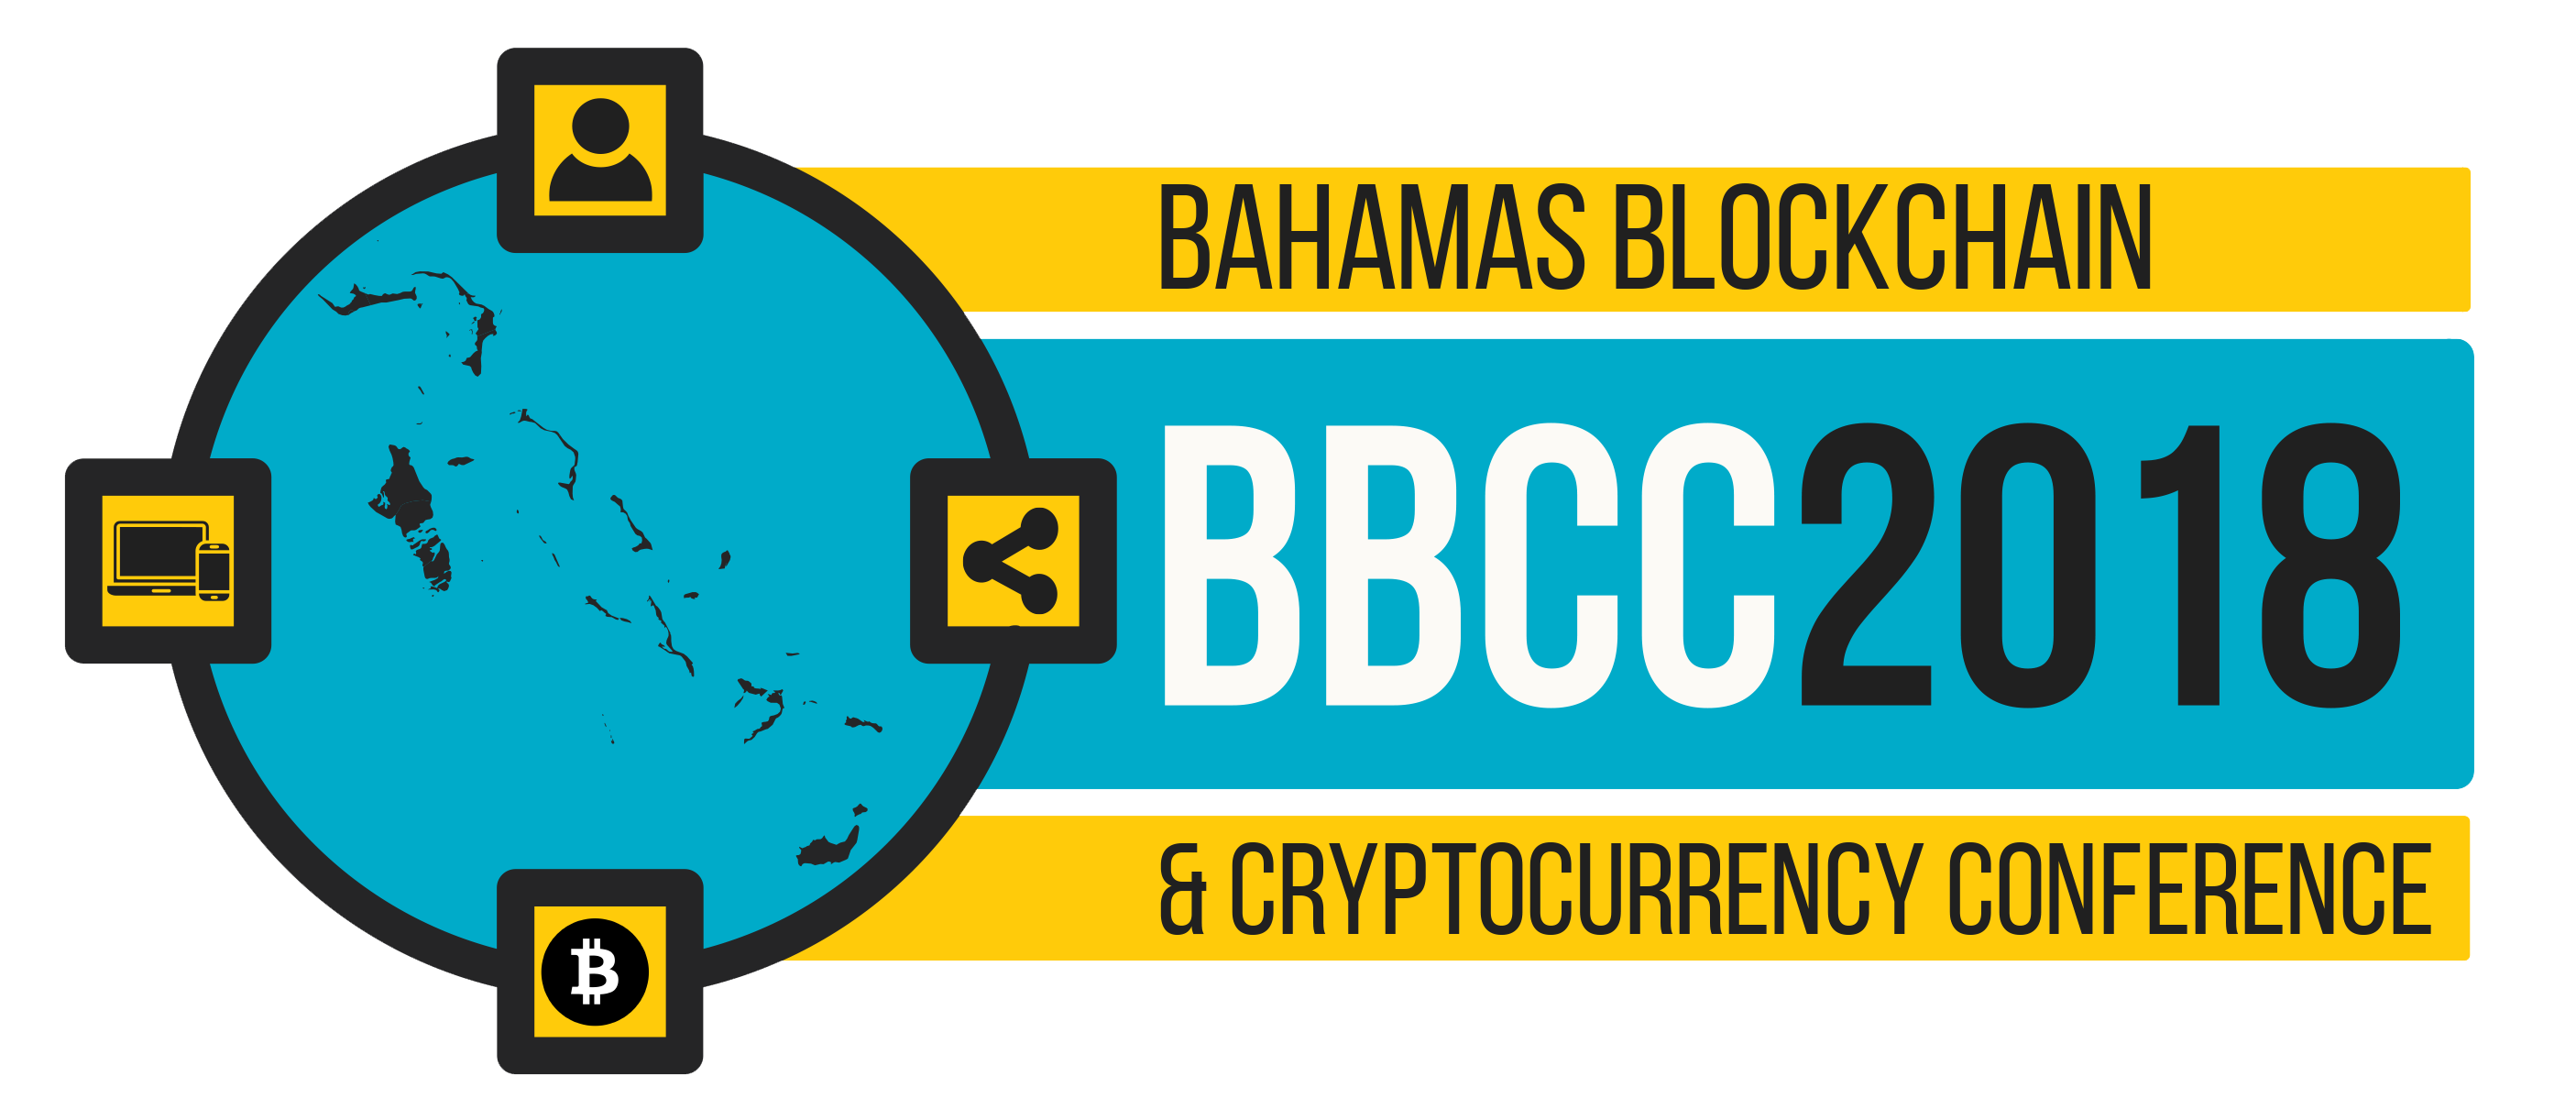 Bahamas Blockchain and Cryptocurrency Conference